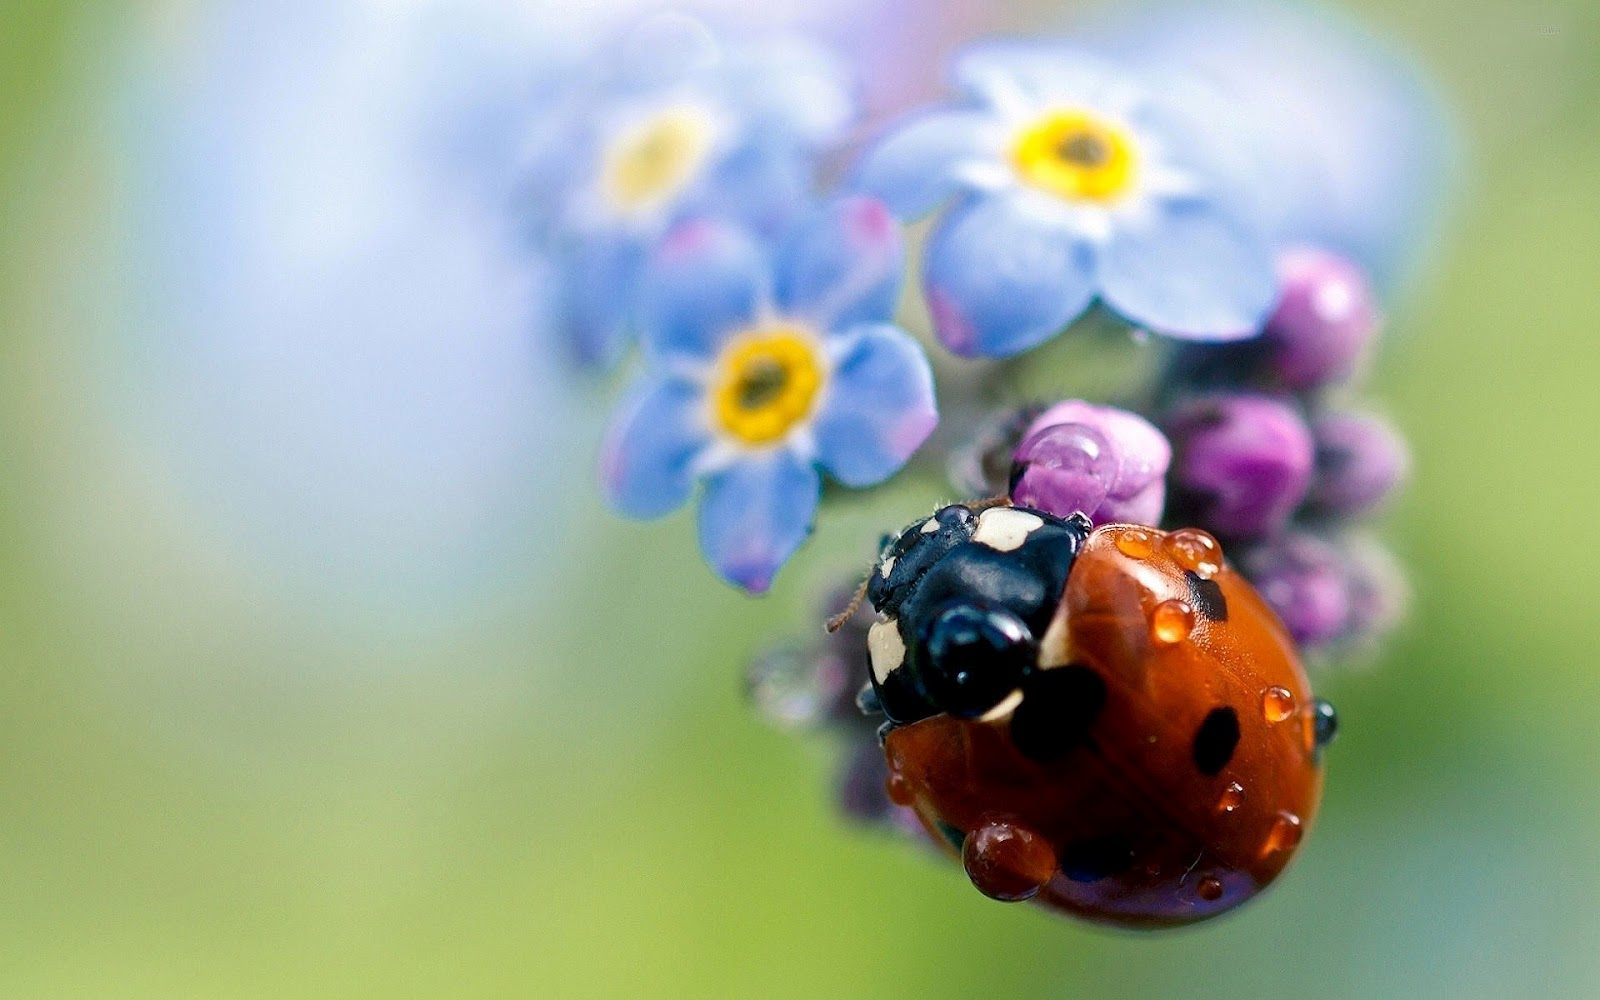 hd ladybugs wallpapers and photos | hd animals wallpapers